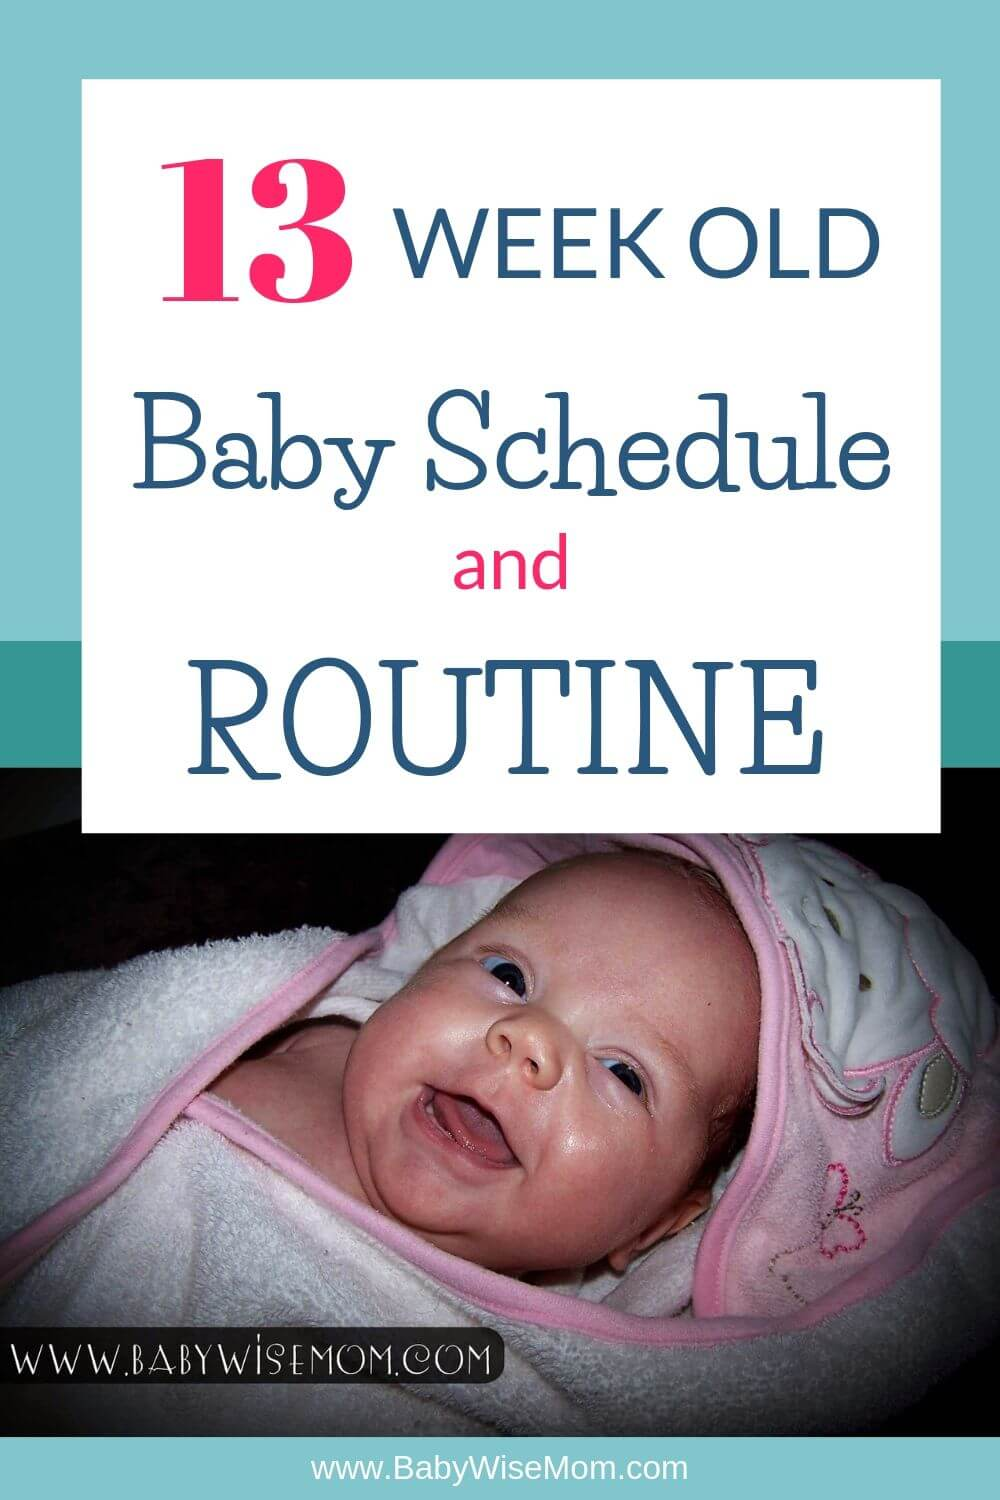 13 week old baby routine pinnable image